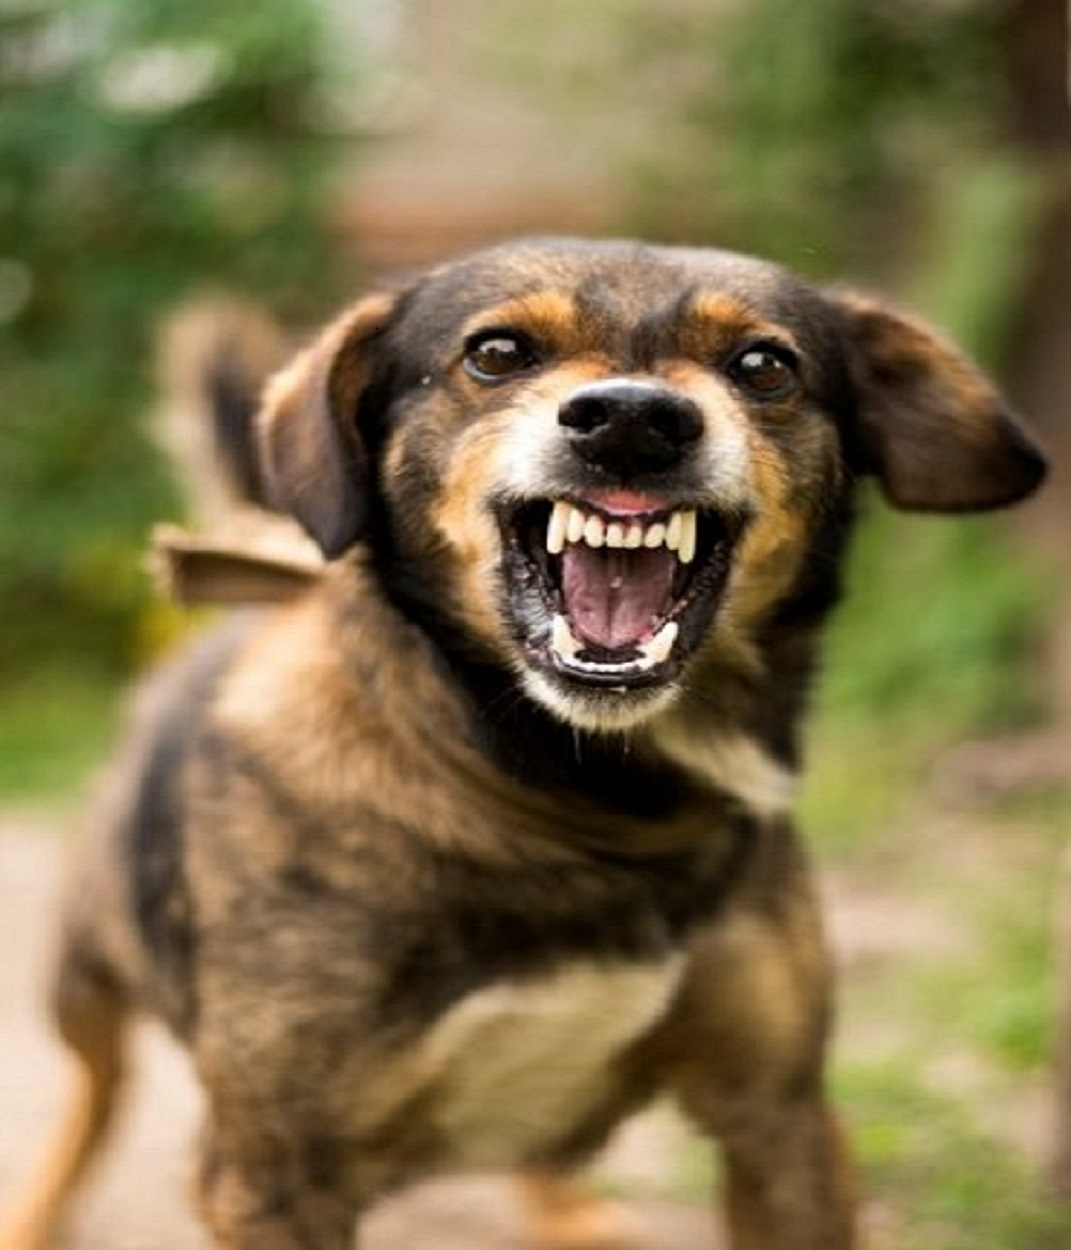 picture of angry, growling dog